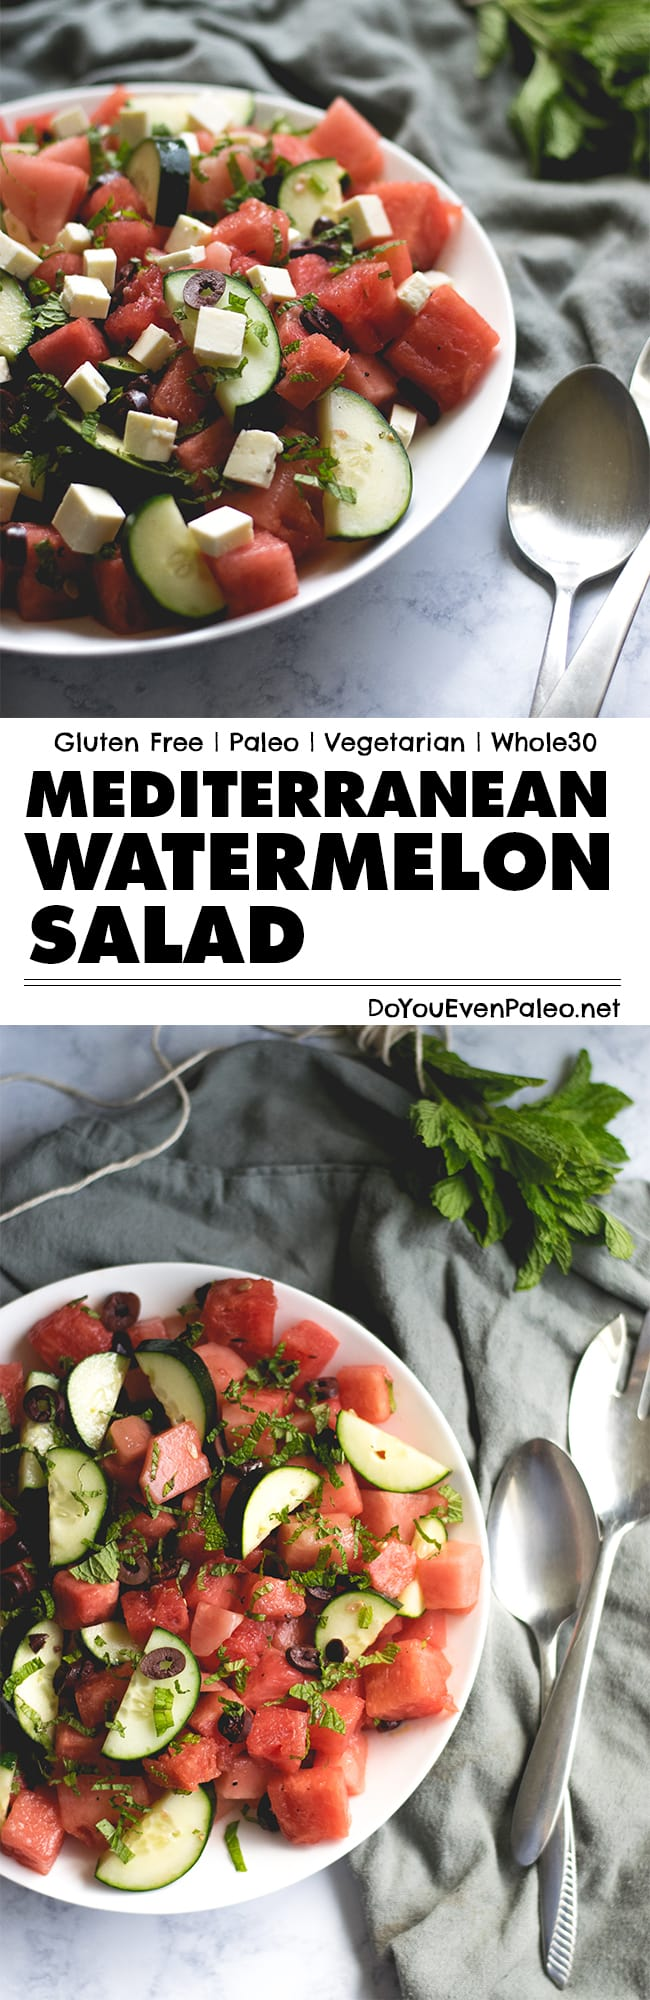 A summery Mediterranean Watermelon Salad is studded with cucumbers, olives, mint, and (optional) feta cheese. Perfect for potlucks or BBQs! | DoYouEvenPaleo.net